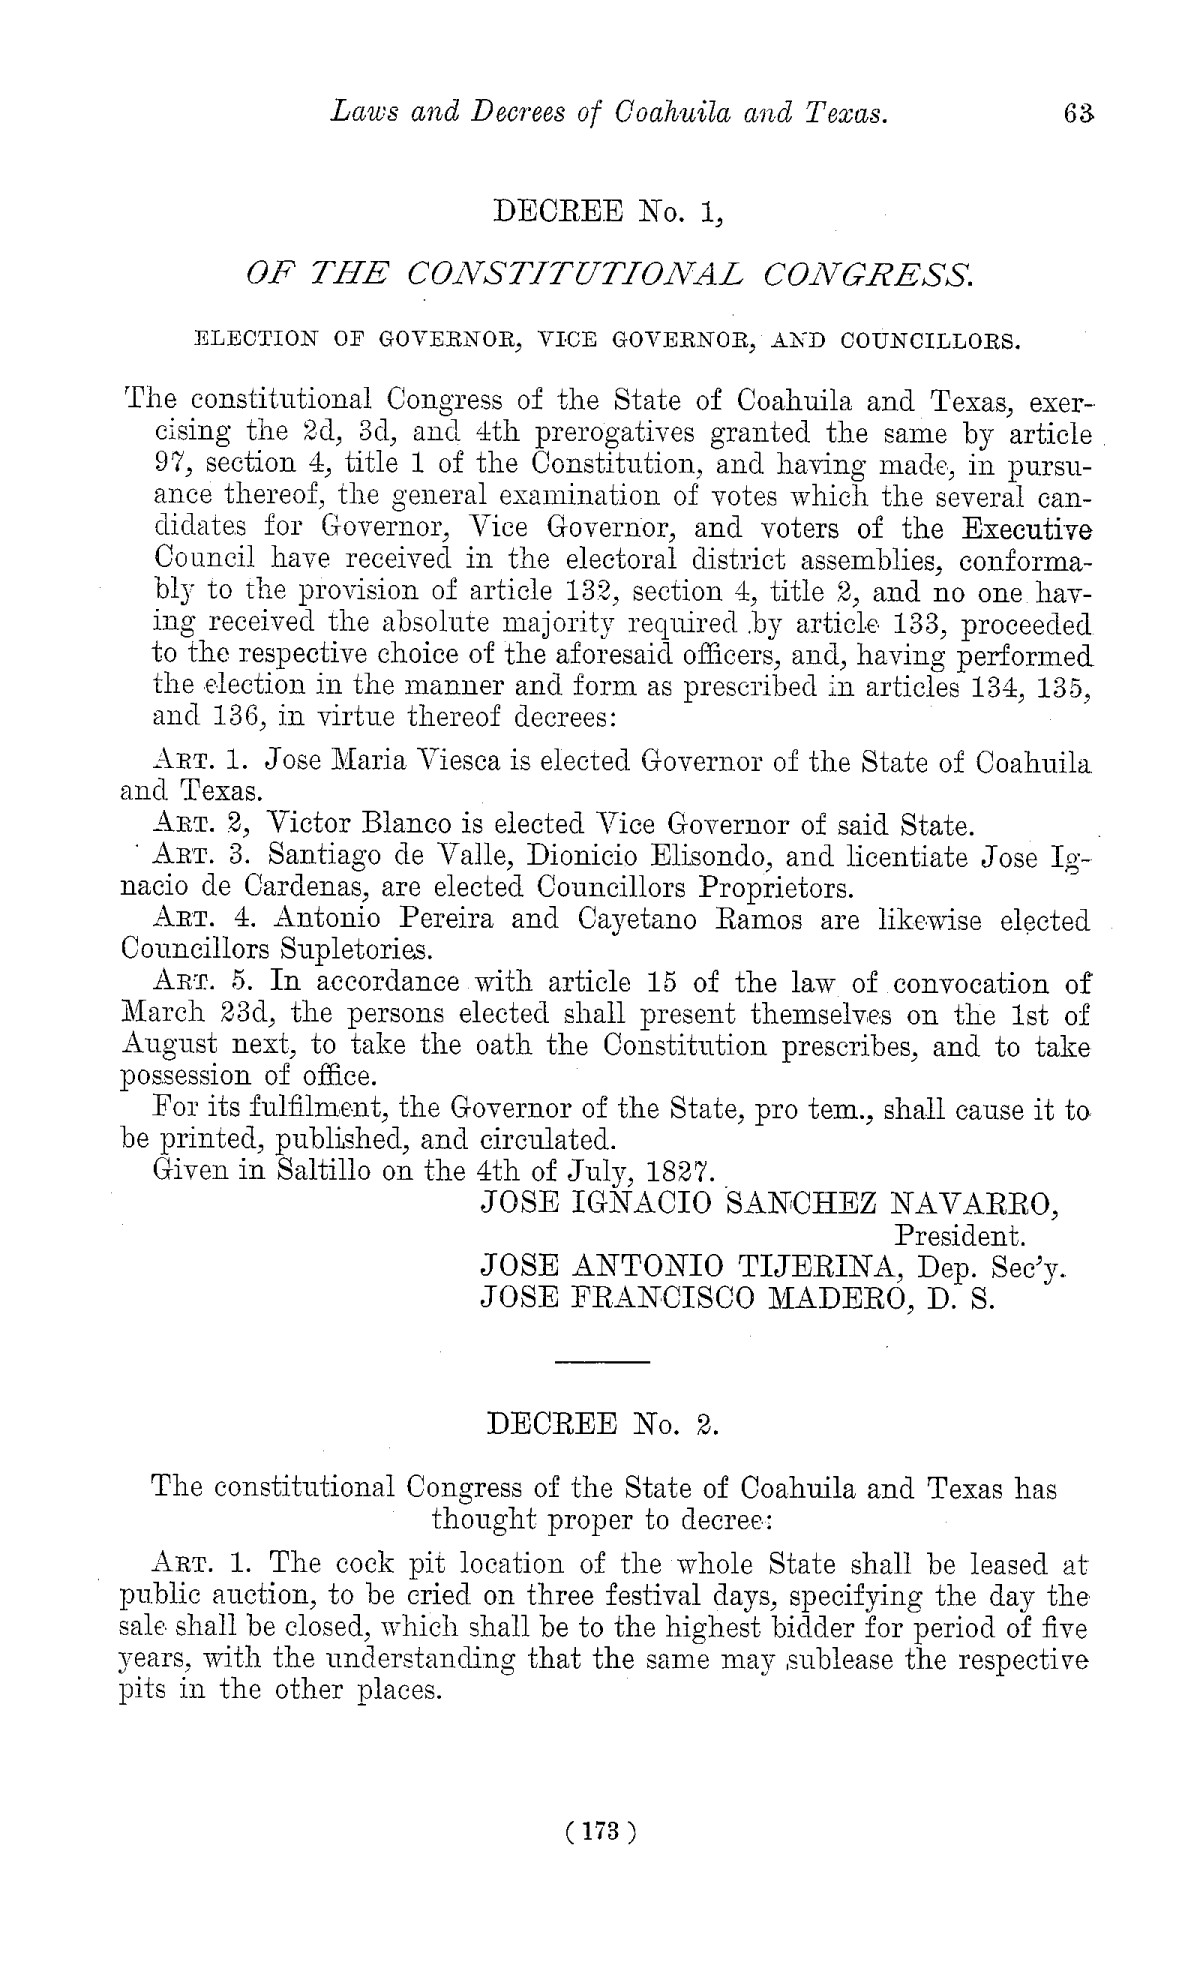 The Laws of Texas, 1822-1897 Volume 1                                                                                                      173